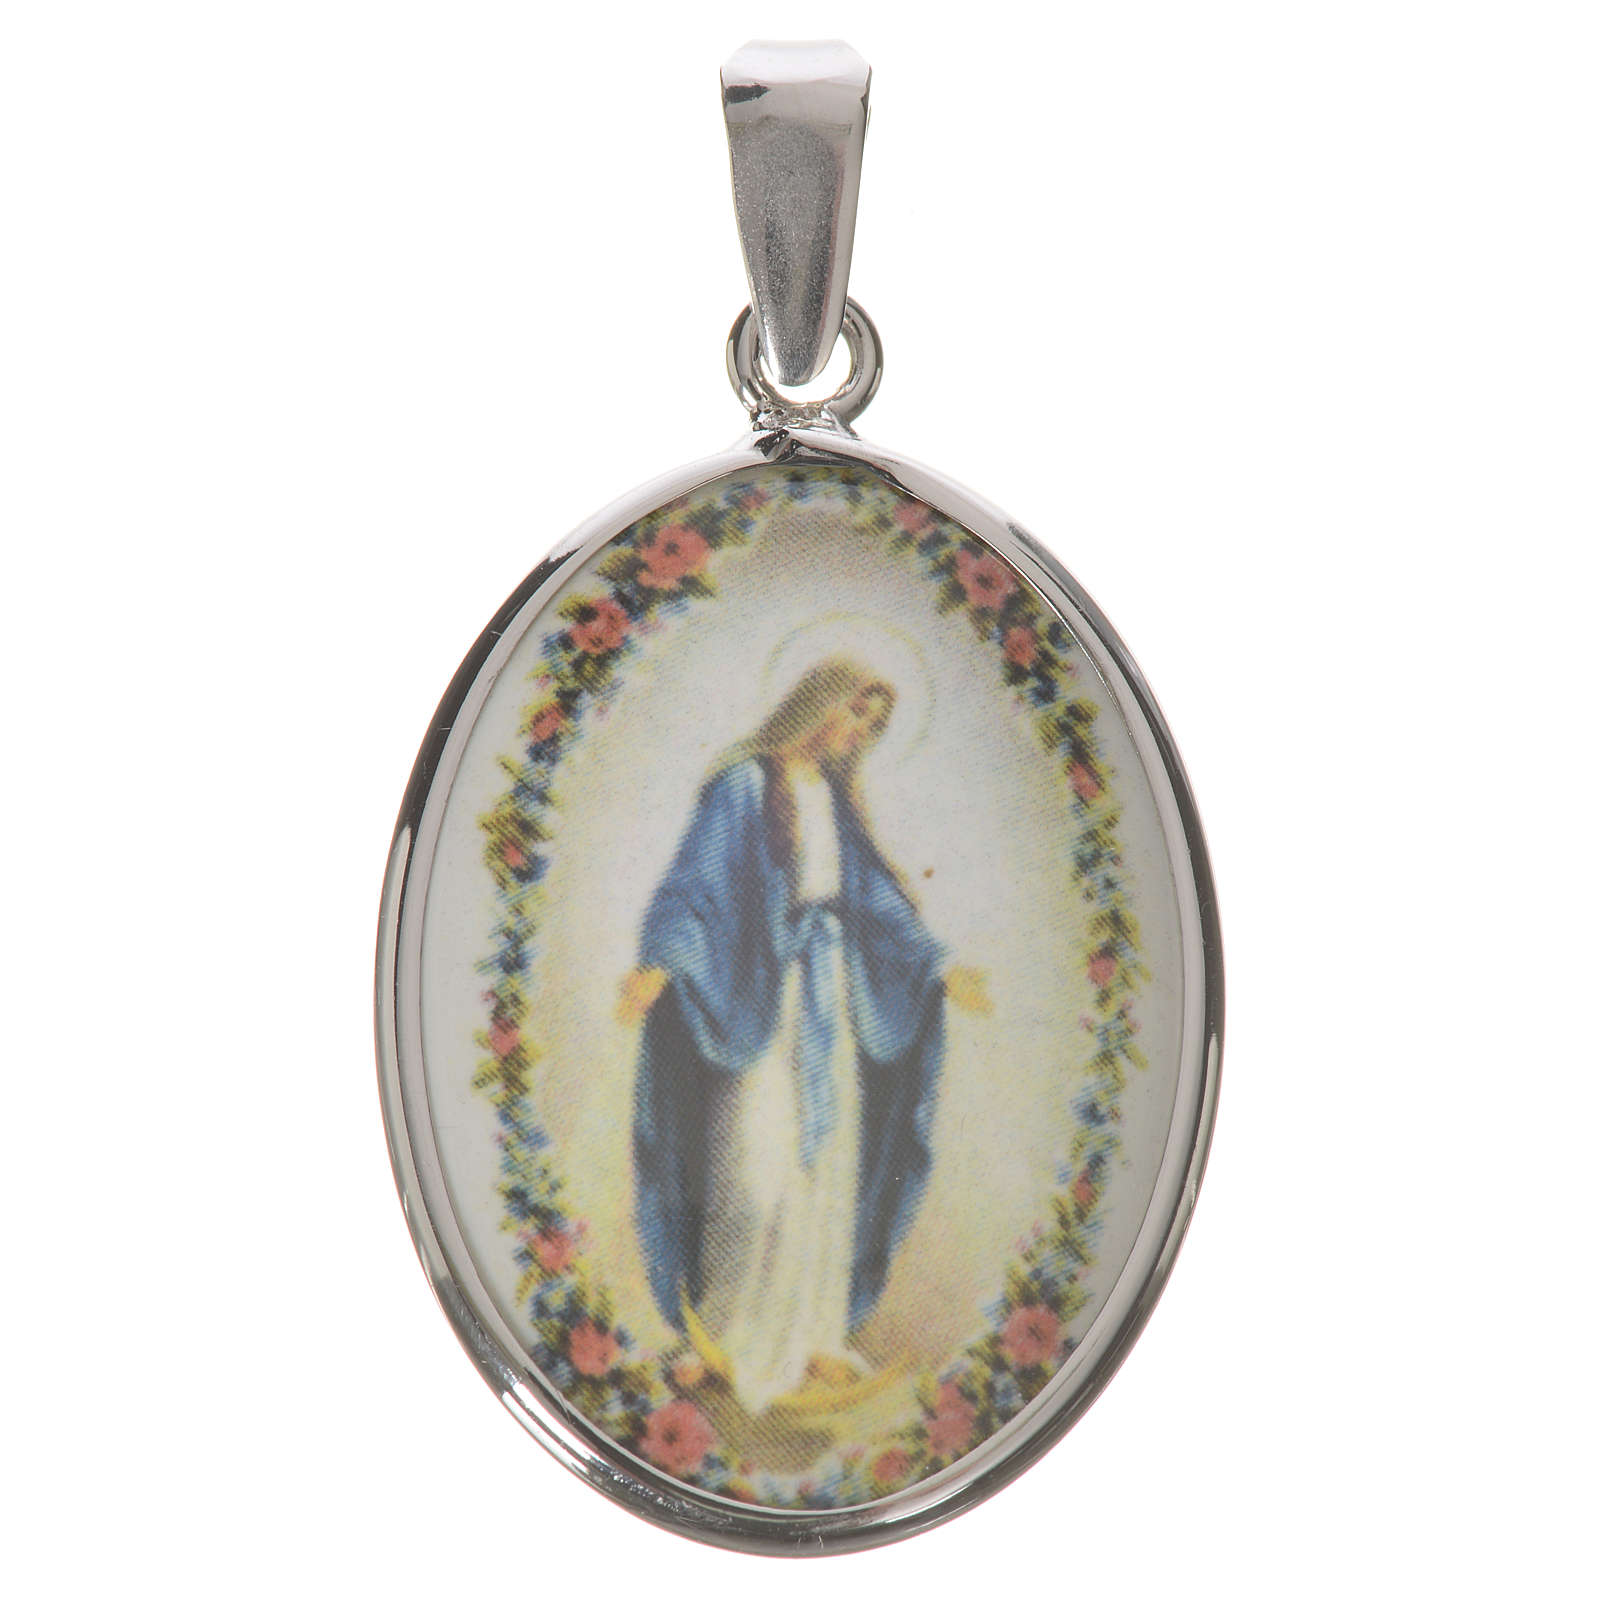 Oval medal in silver, 27mm Miraculous Medal 4